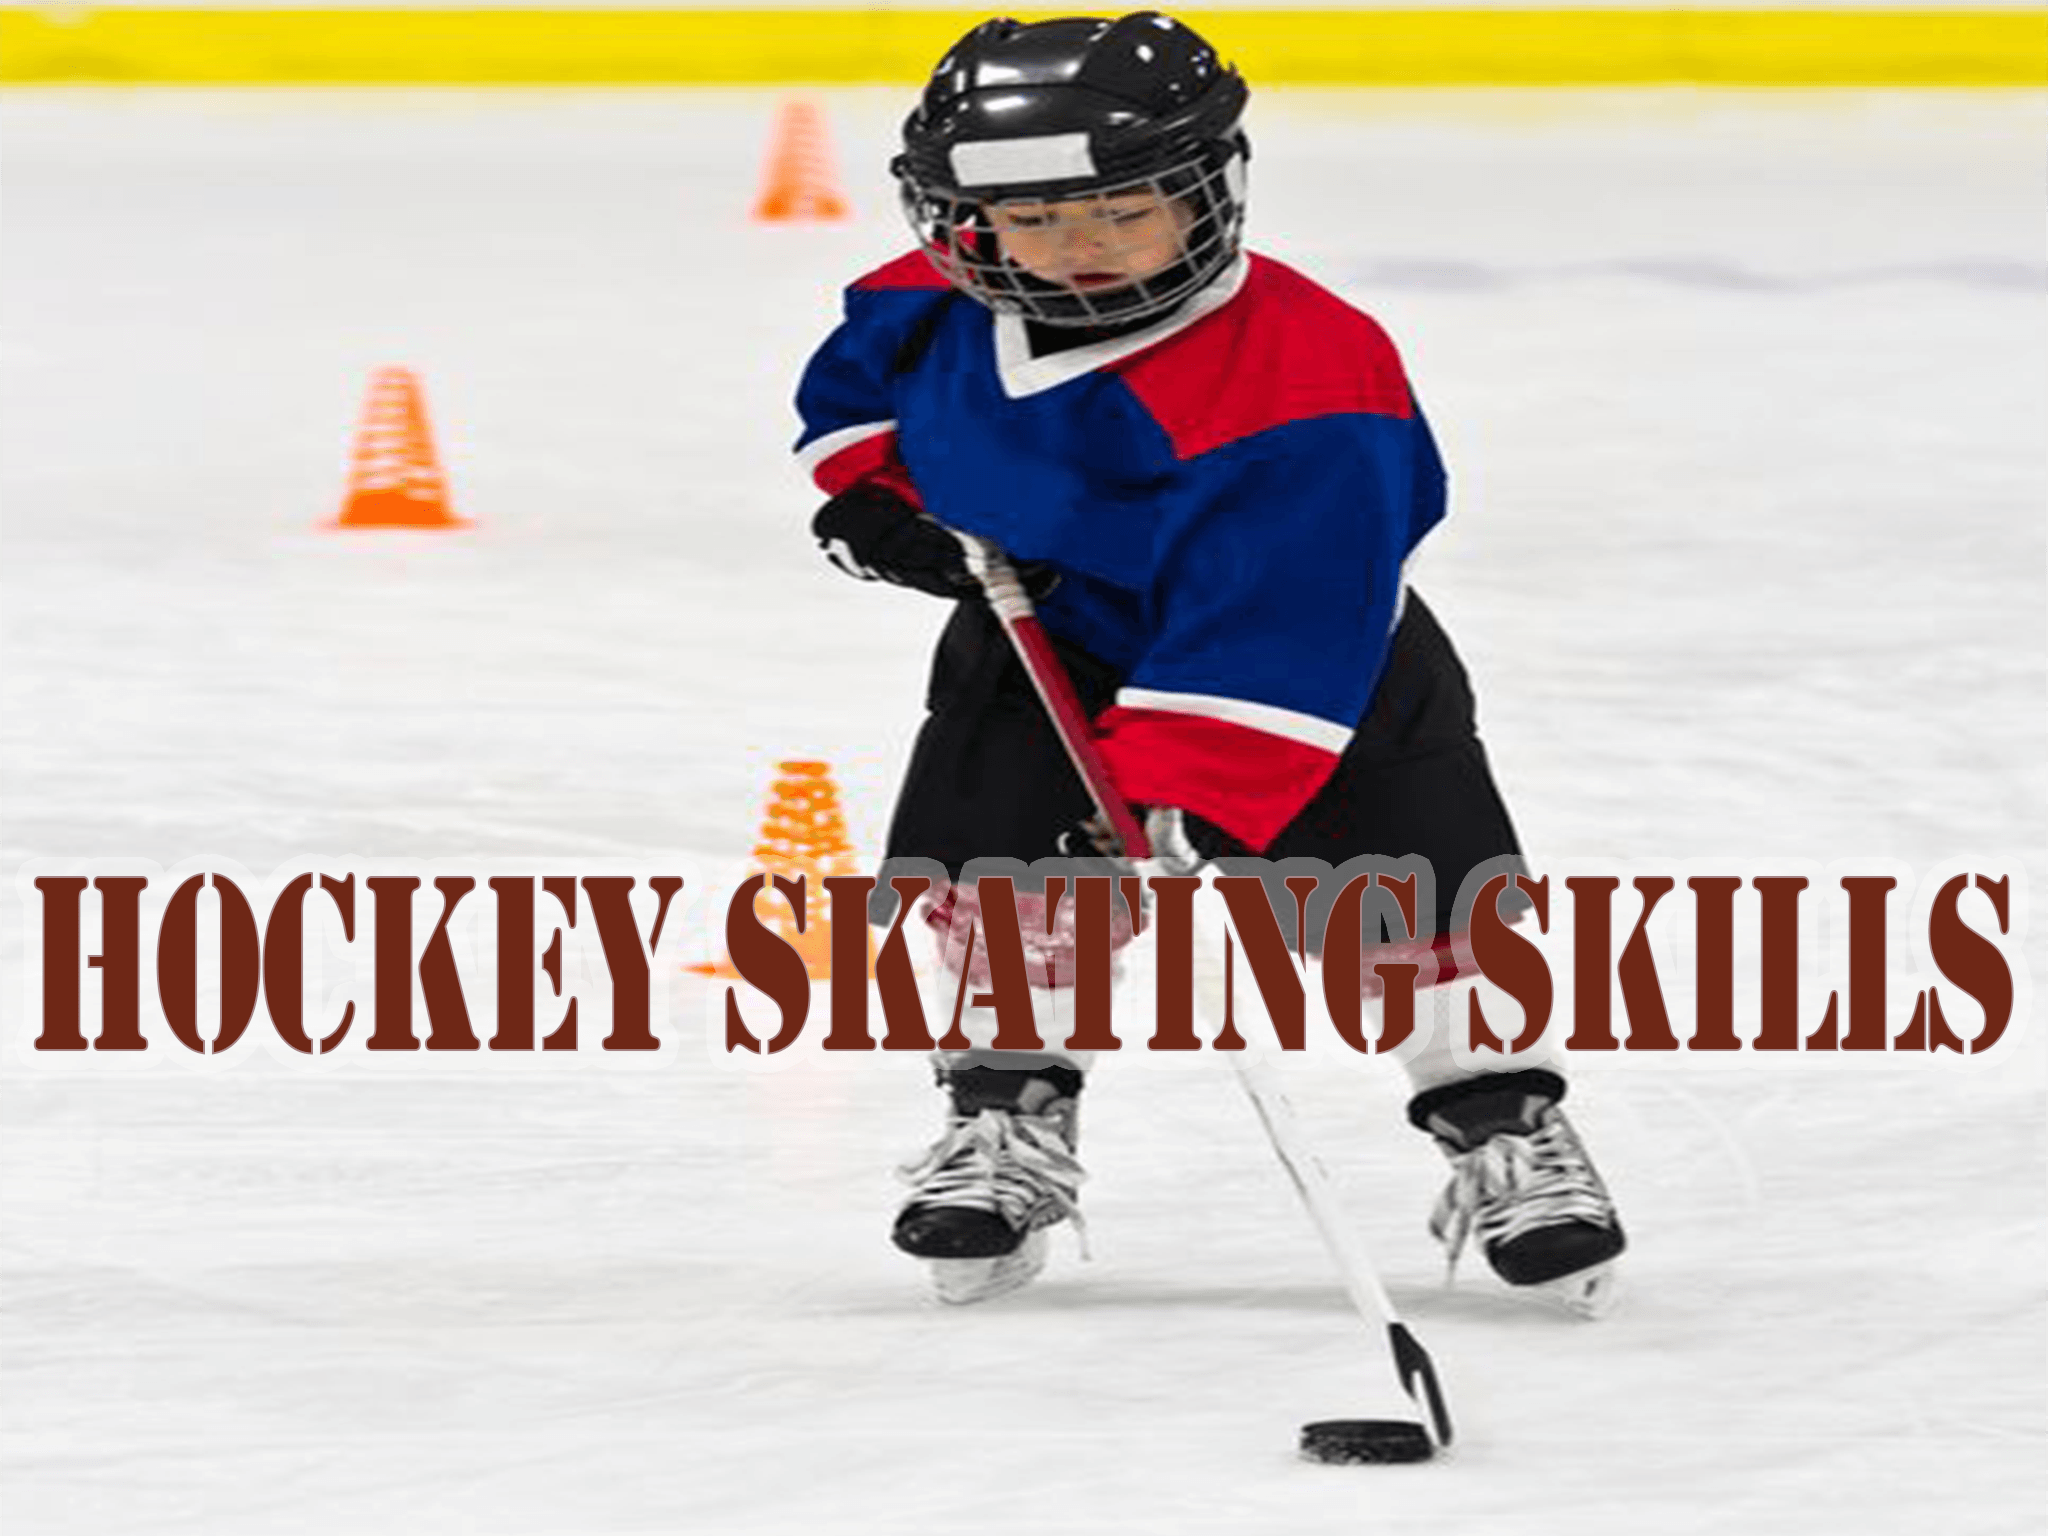 HockeySkatingSkillsGraphic